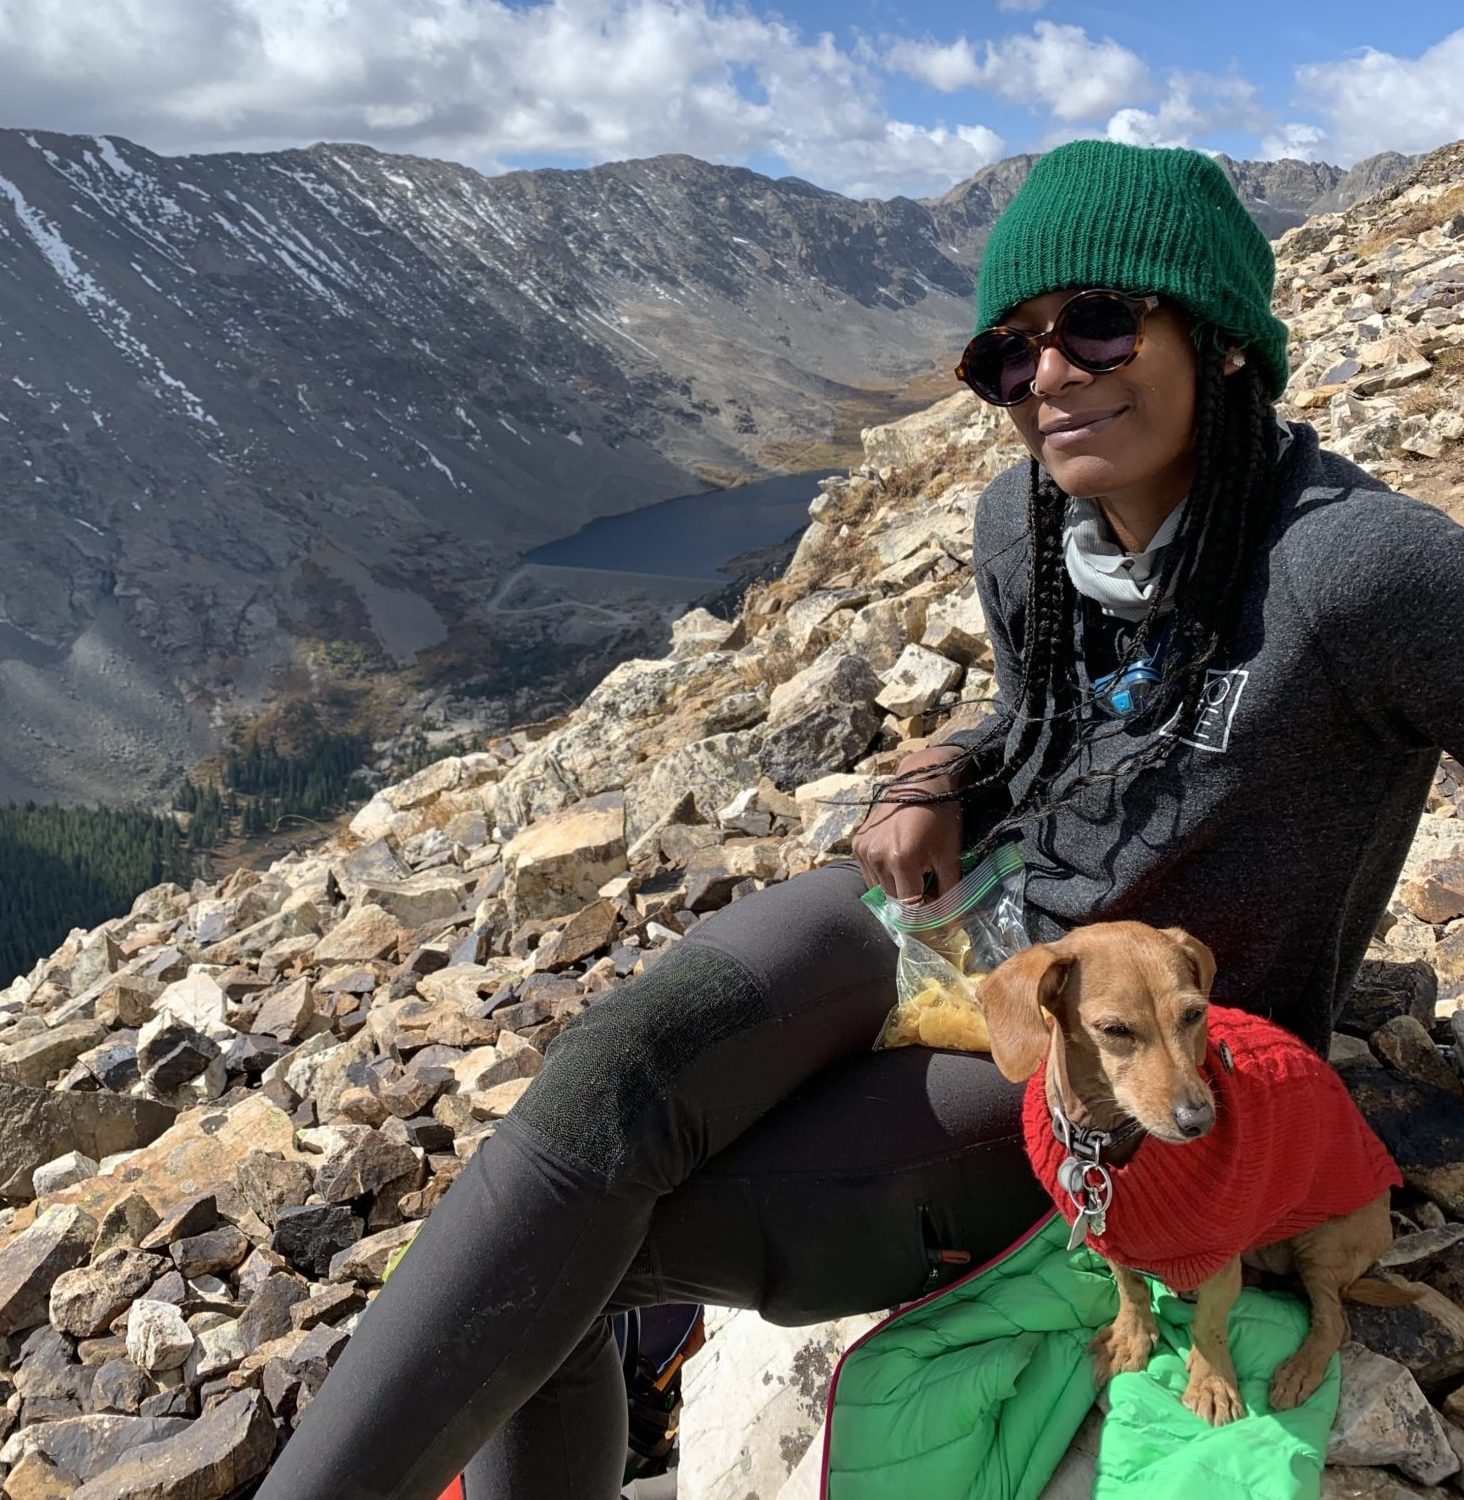 Trail Tips for Hiking With Your Dog